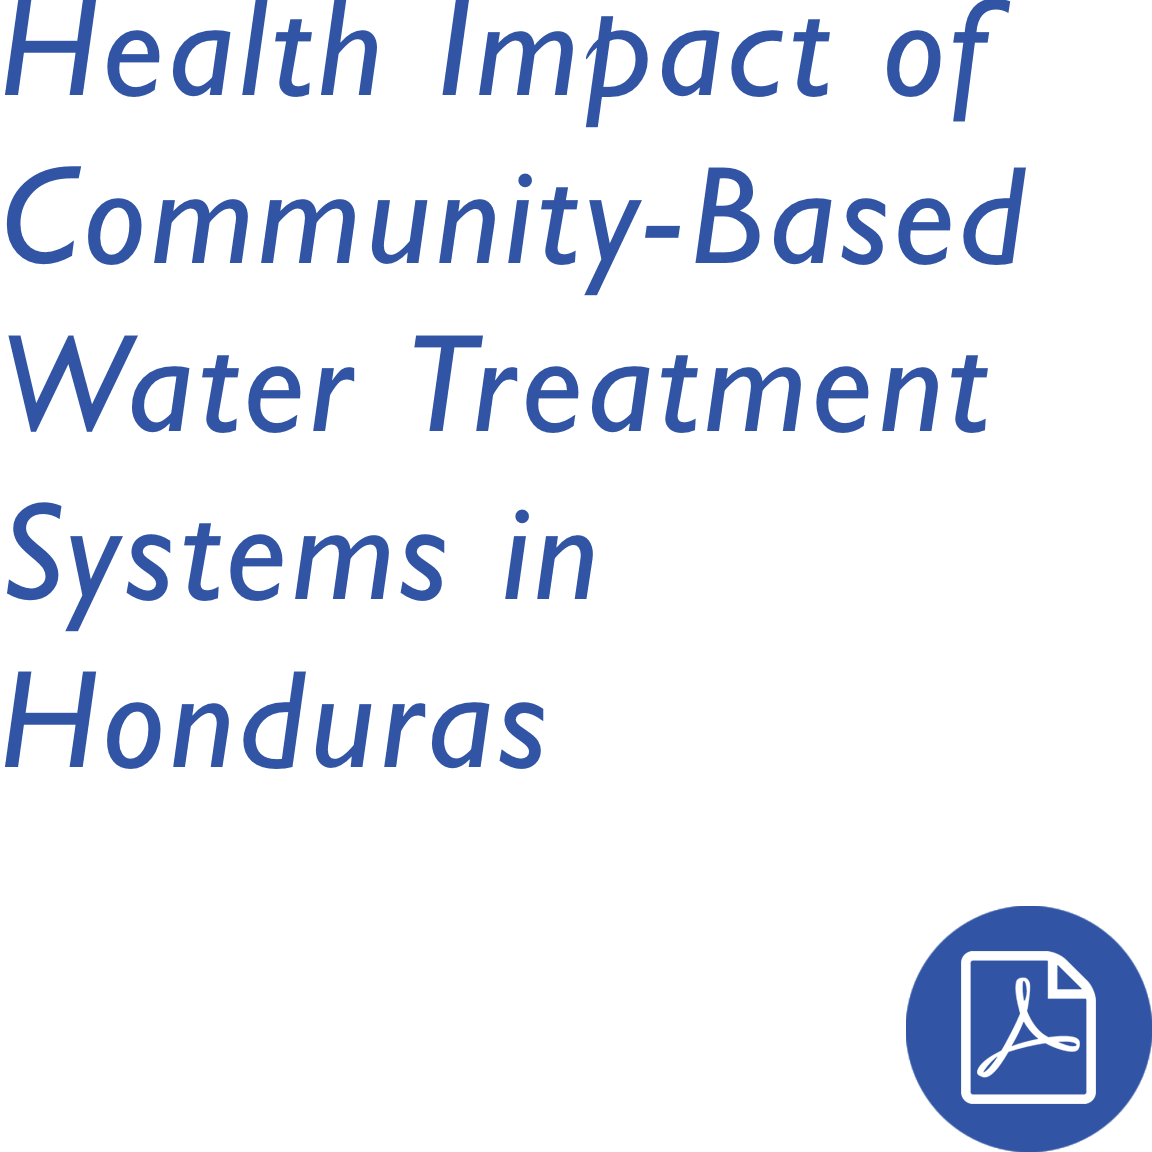 Health Impact of Community-Based Water Treatment Systems in Honduras